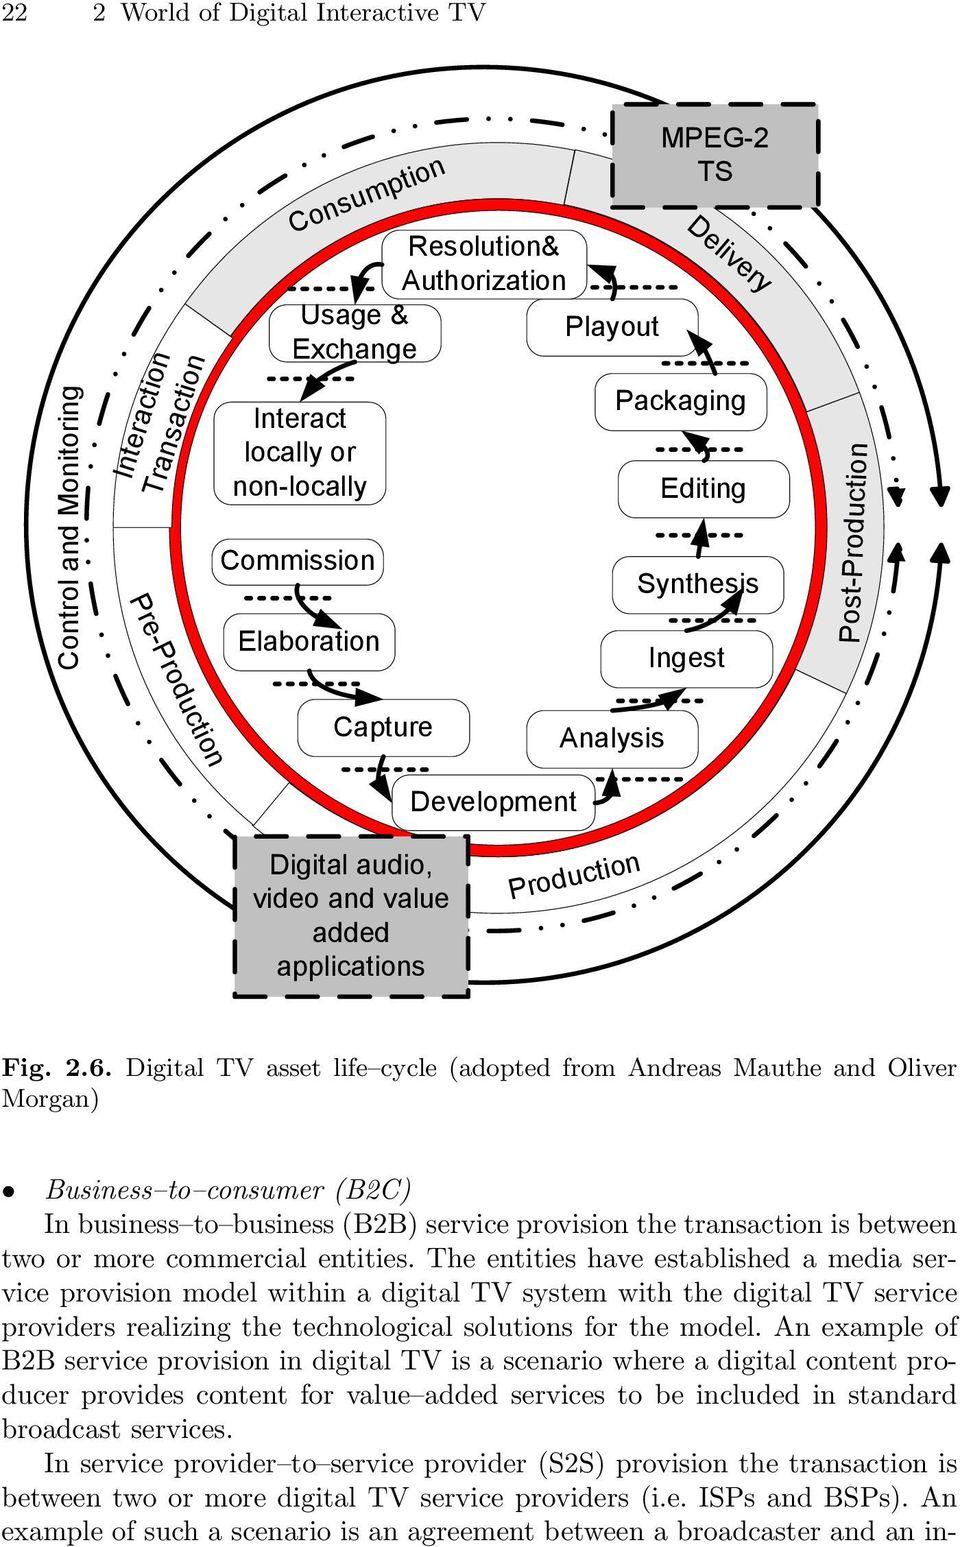 Digital TV asset life cycle (adopted from Andreas Mauthe and Oliver Morgan) Business to consumer (B2C) In business to business (B2B) service provision the transaction is between two or more